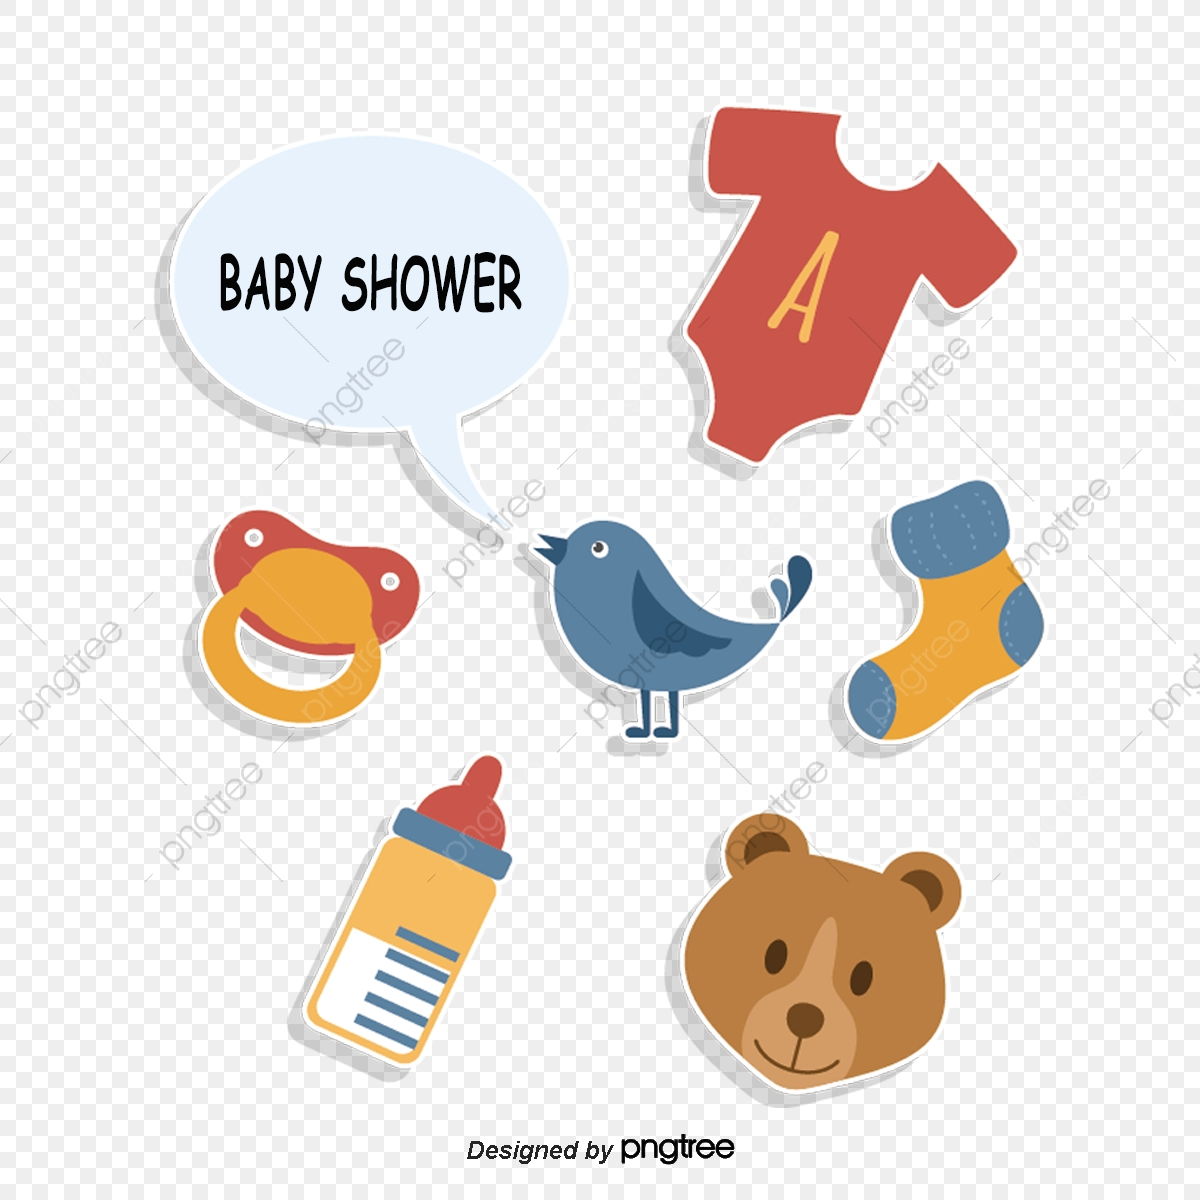 Cartoon Retro Baby Shower Decoration Cartoon Lovely Toys Png Transparent Clipart Image And Psd File For Free Download